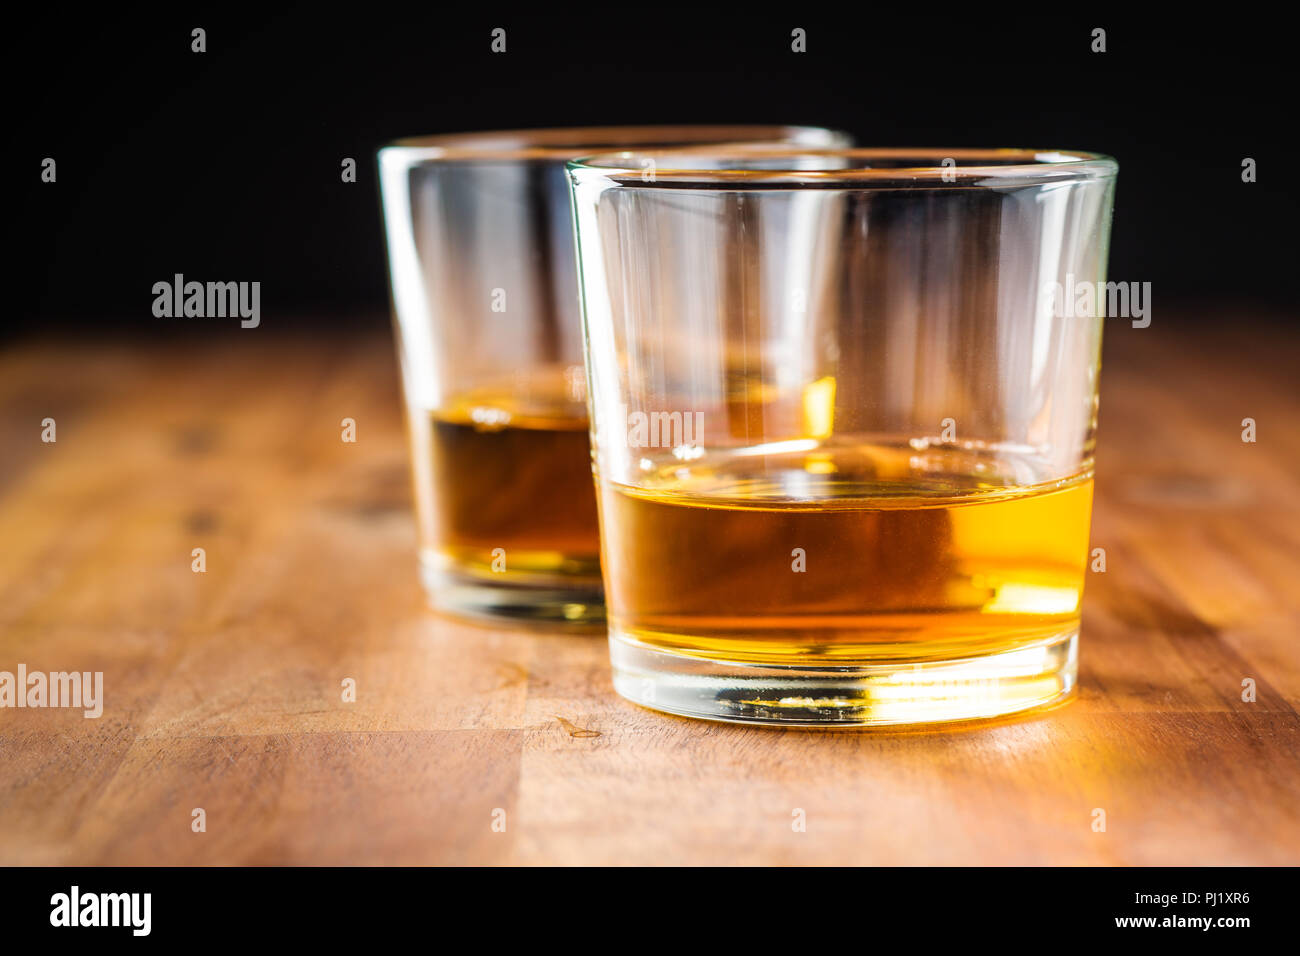 Glass of alcoholic drink wooden table. Whiskey in glass. - Stock Image